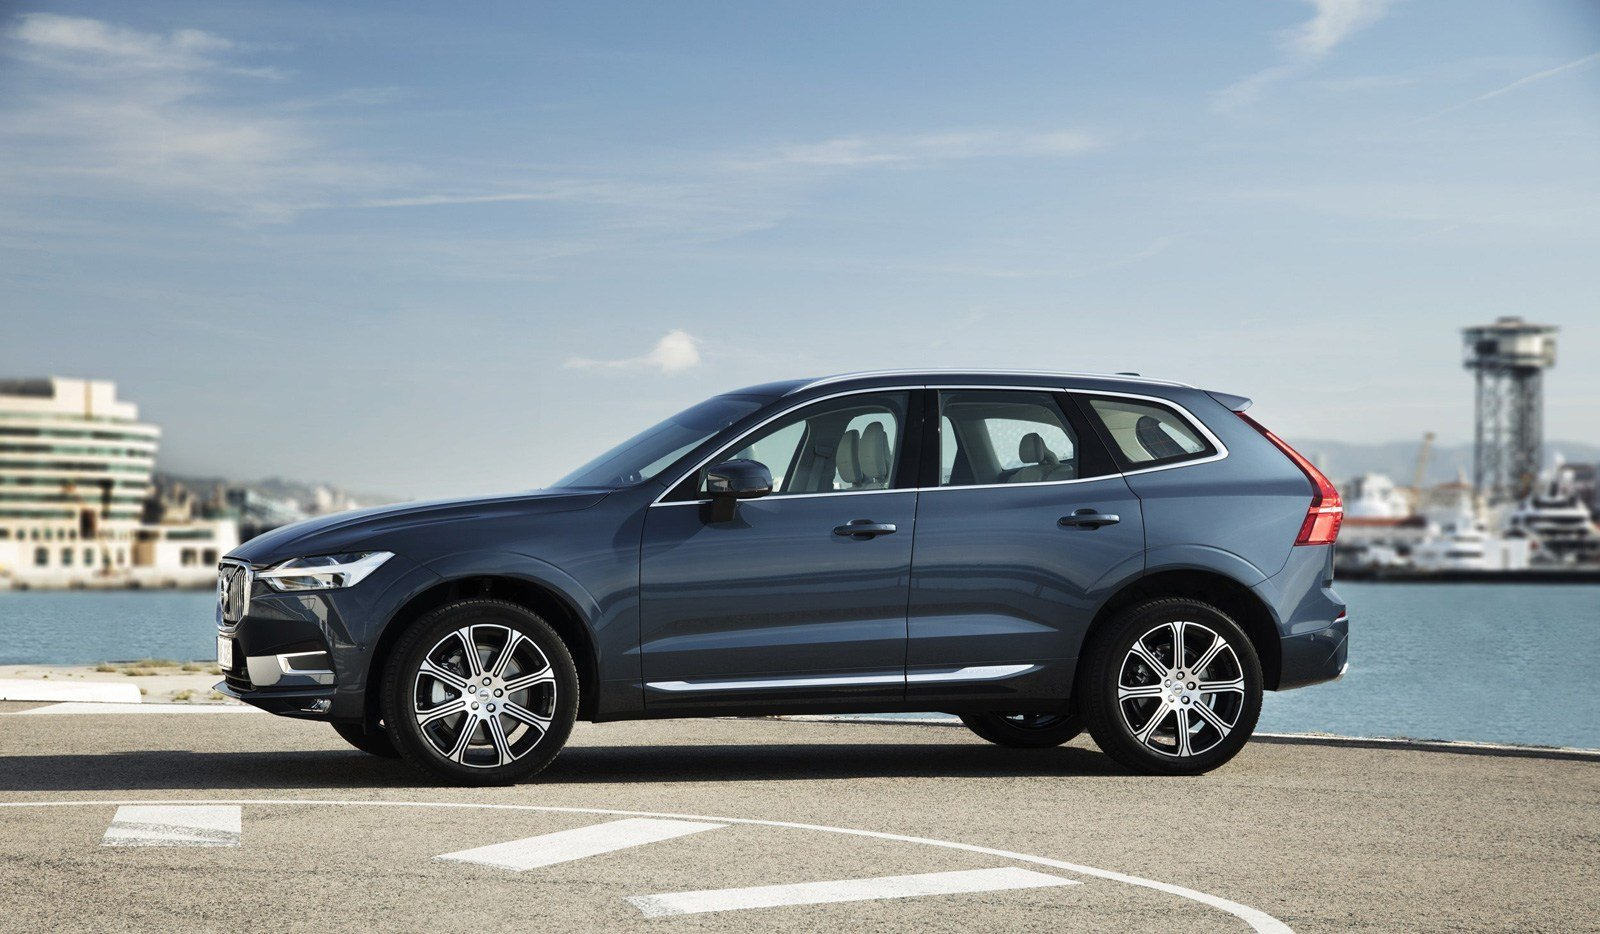 crossover interior in luxury stock volvo view a mid vehicle hybrid plug of suv centre batteries at on the front has photo situated version size